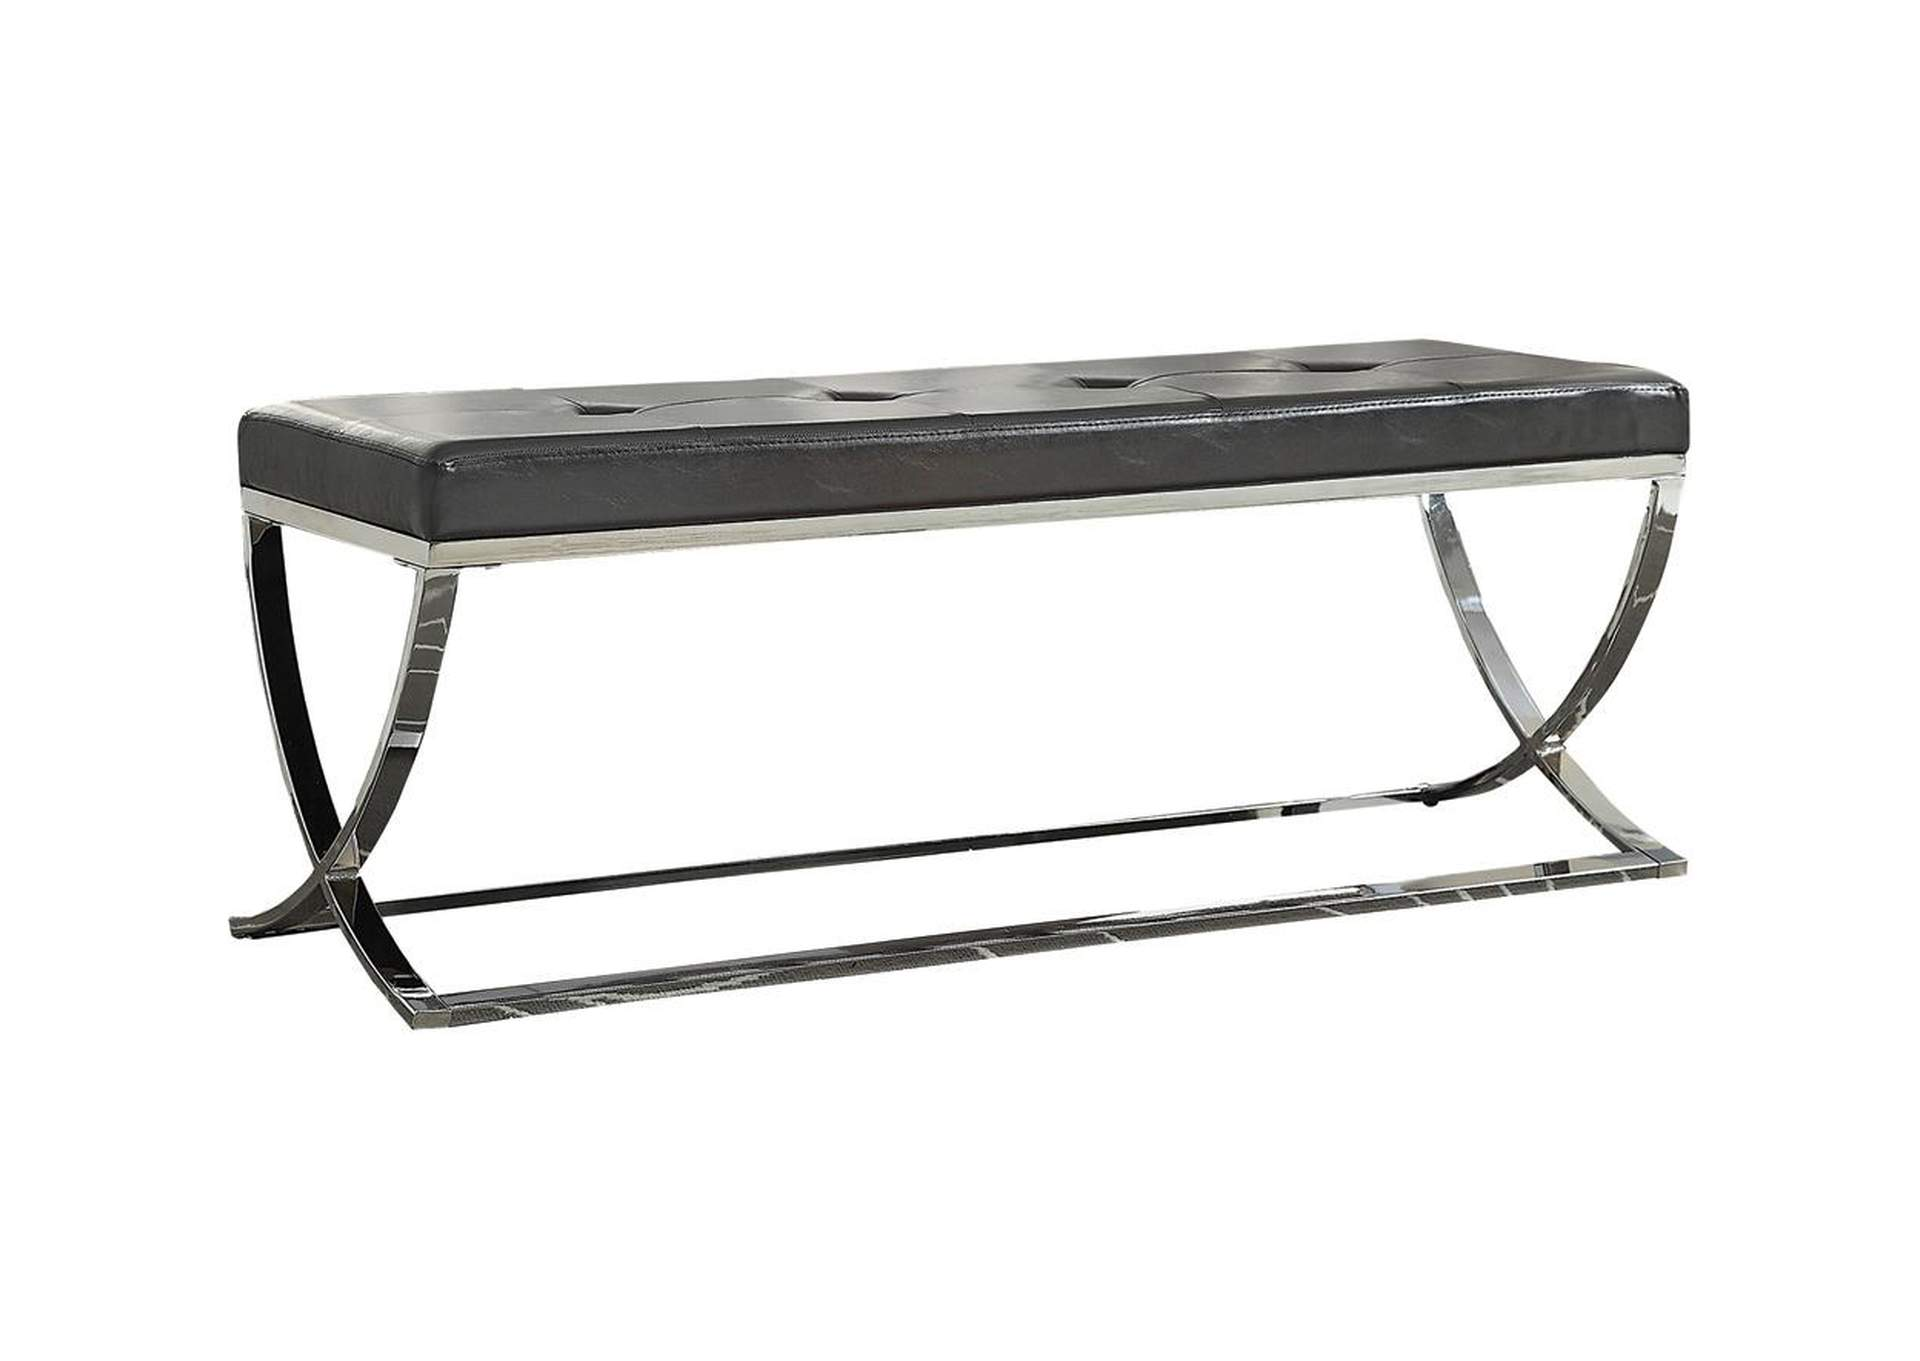 Chrome Contemporary Chrome Dining Bench,Coaster Furniture